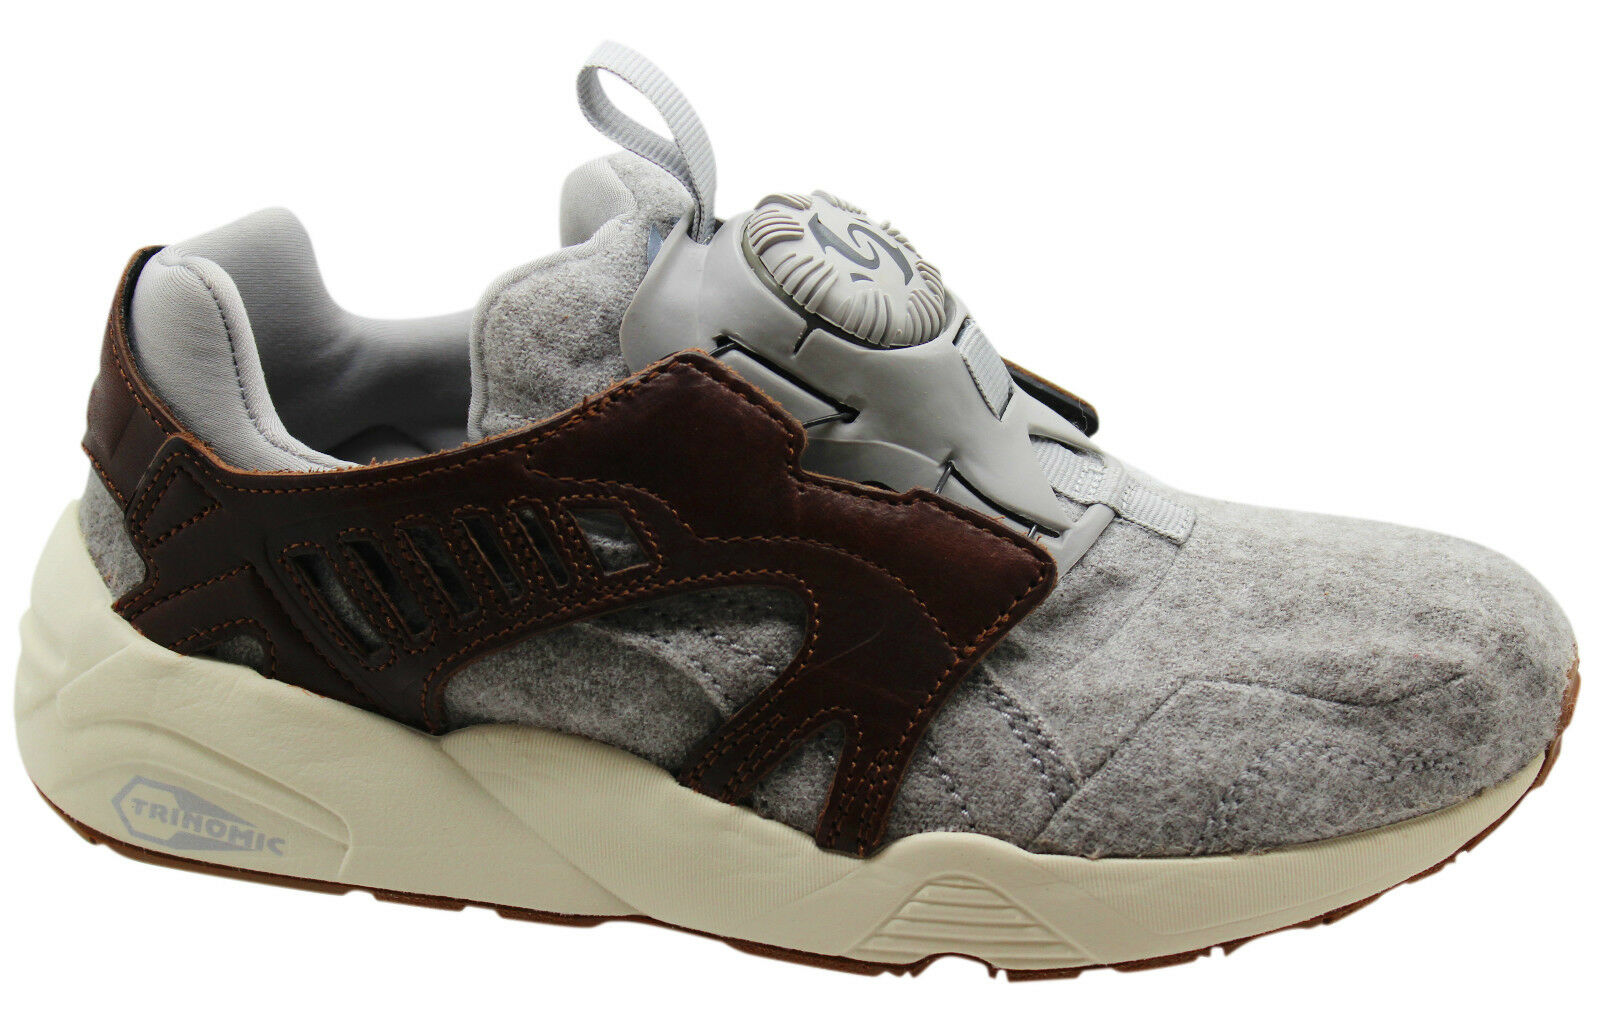 Puma Trinomic Disc Blaze Felt Mens Trainers Slip On Leather Grey 358820 01 U113